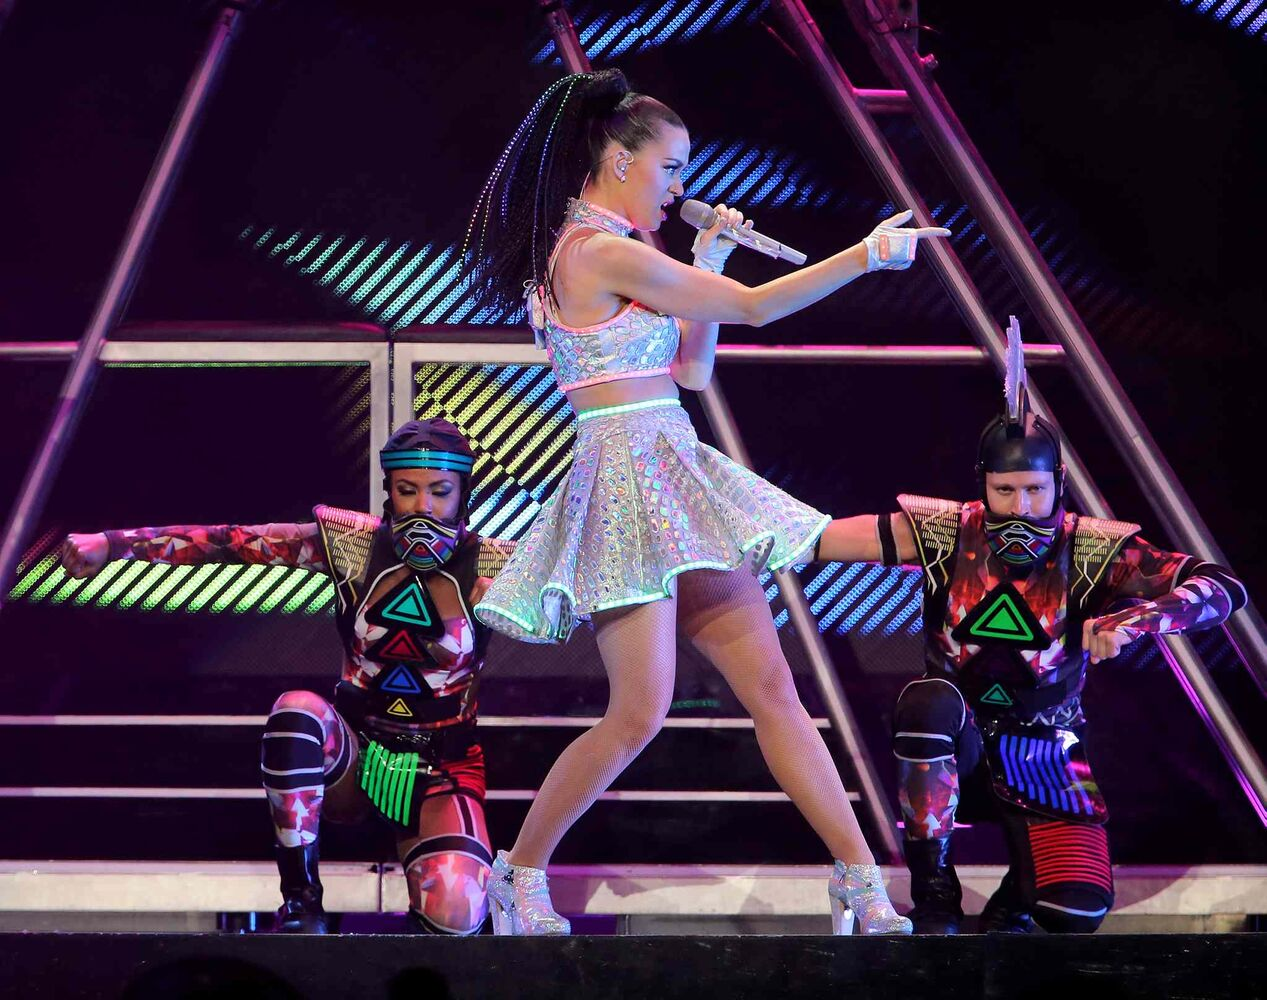 Katy Perry performs at Winnipeg's MTS Centre Tuesday, Aug. 26.  (Trevor Hagan / Winnipeg Free Press)